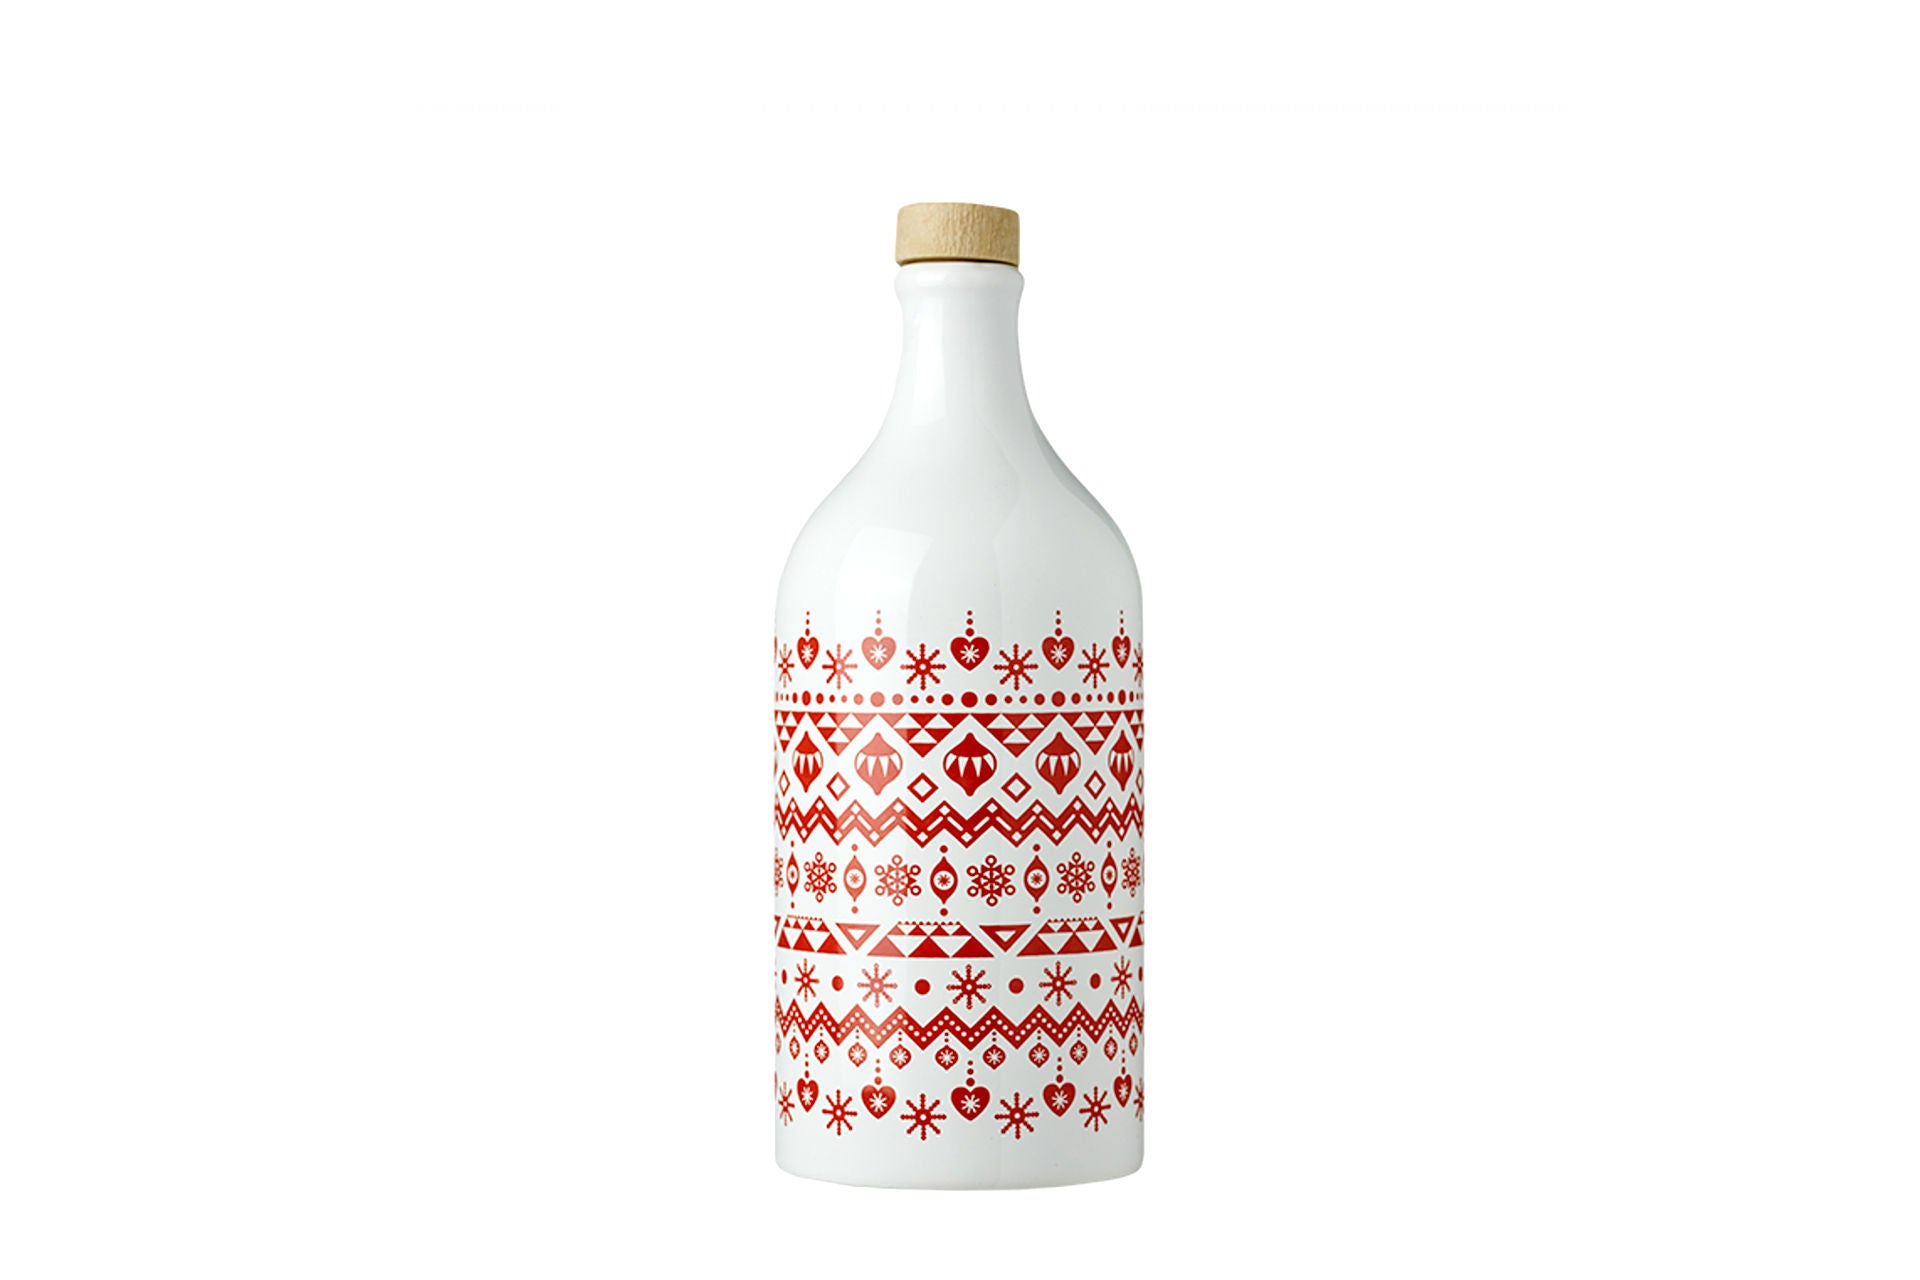 Limited Edition Knitting Collection Extra Virgin Olive Oil (Intense) in Ceramic Bottle 500ml